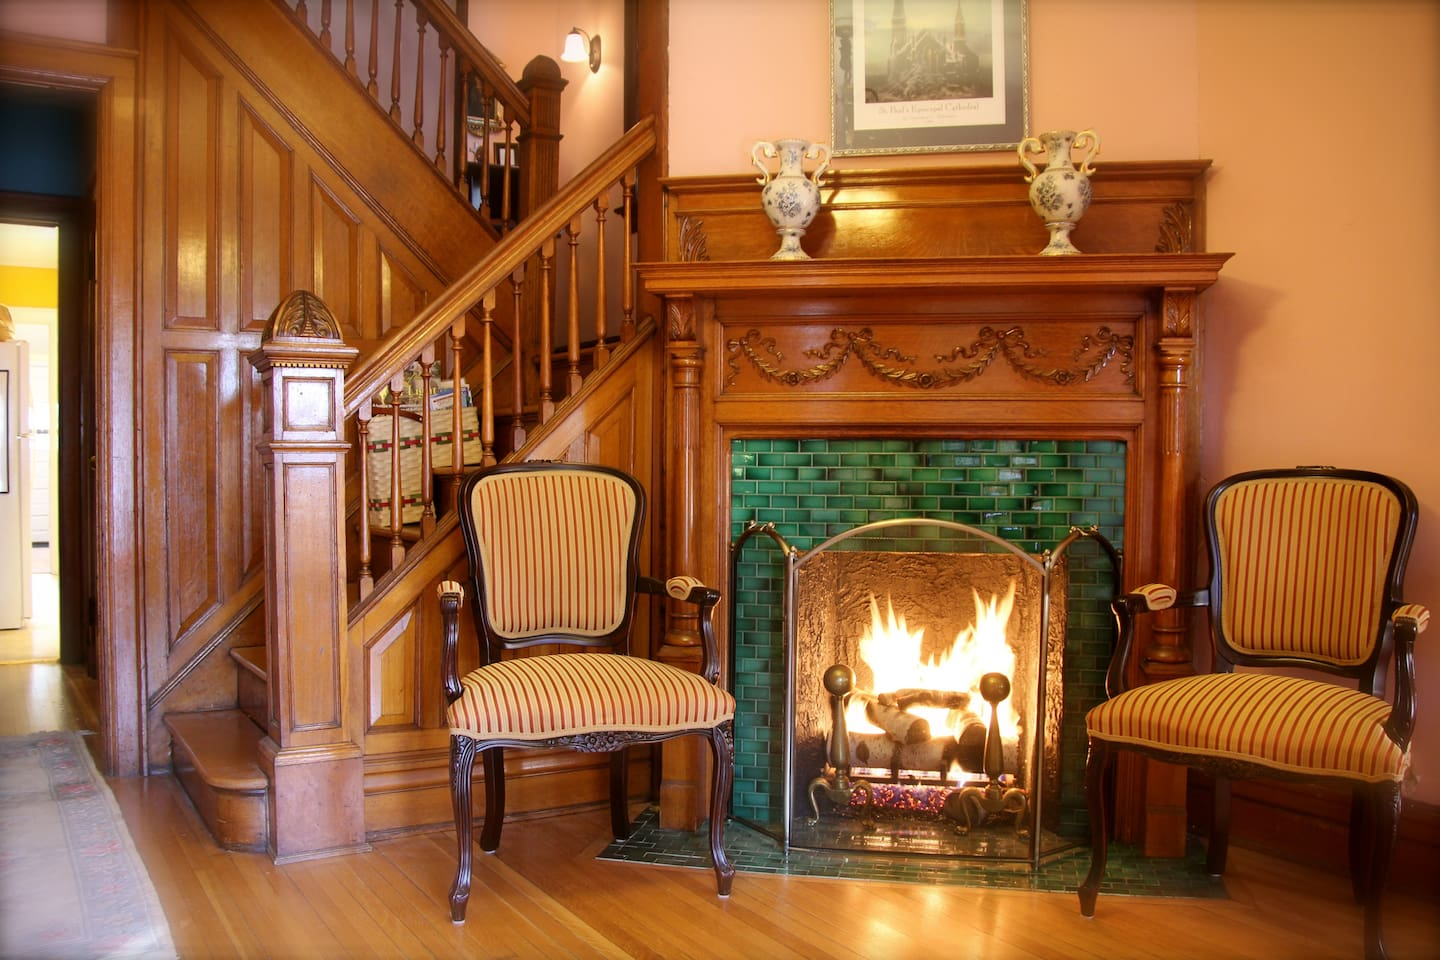 A warm welcome to the Rowe House Rectory.  Your private room is up the stairs.